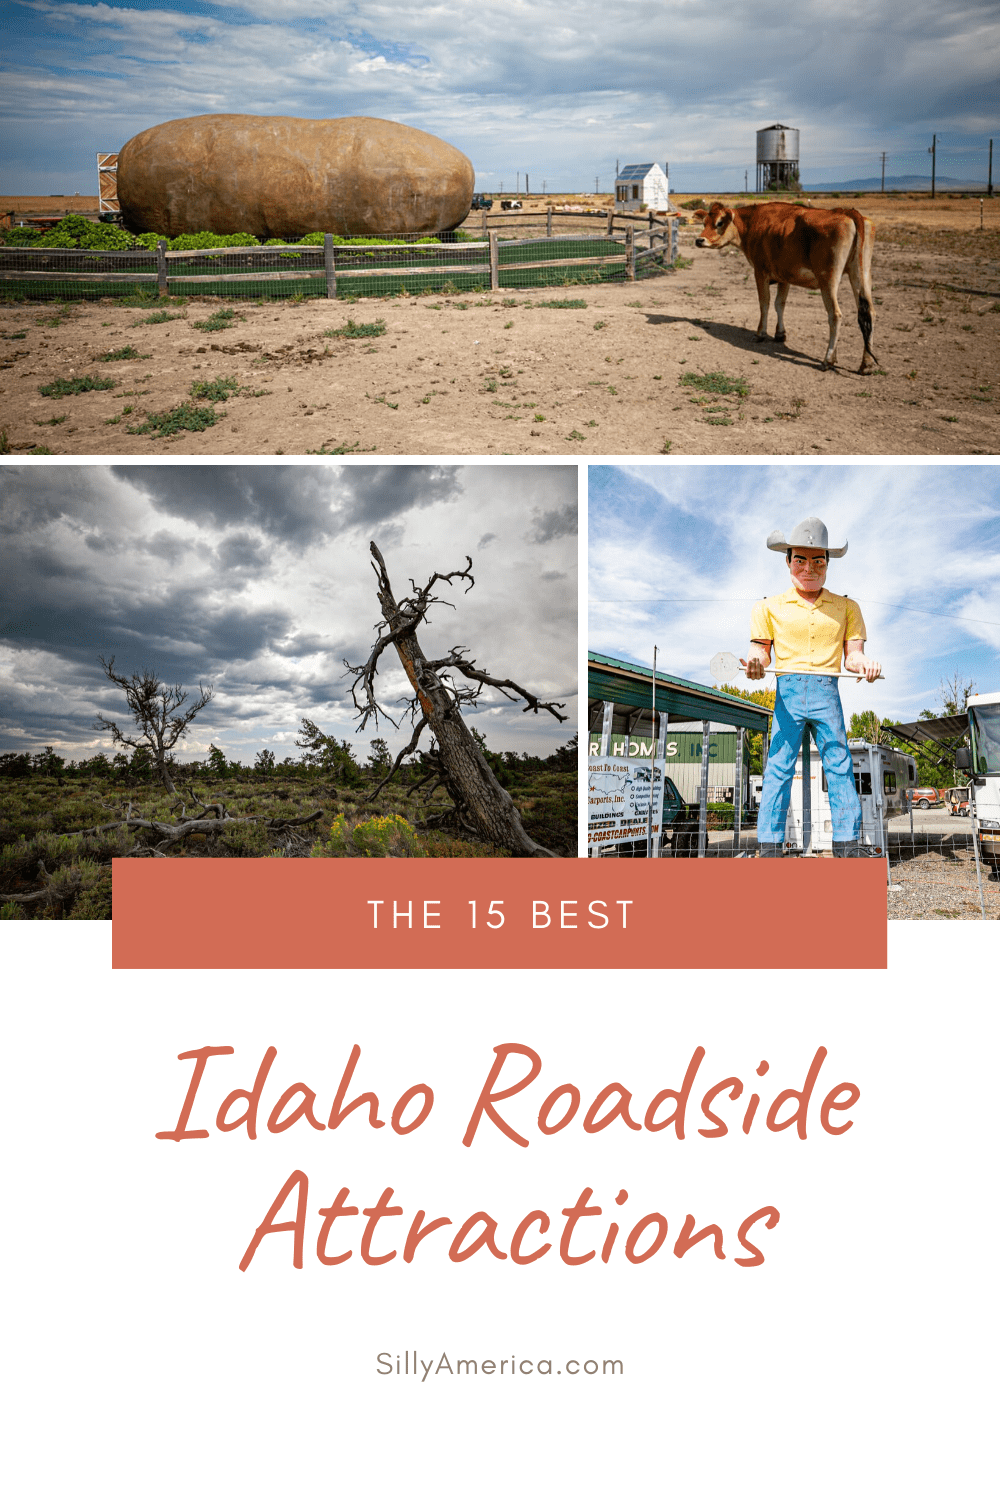 The best Idaho roadside attractions to visit on an Idaho road trip or weekend getaway. Add these roadside oddities and road trip stops to your bucket list and visit these roadside attractions in Idaho on your next travel adventure. #IdahoRoadsideAttractions #IdahoRoadsideAttraction #RoadsideAttractions #RoadsideAttraction #RoadTrip #IdahoRoadTrip #IdahoRoadTripMap #IdahoRoadTripBucketLists #IdahoBucketList #ThingsToDoInIdaho #IdahoRoadTripTravelTips #WeirdRoadsideAttractions